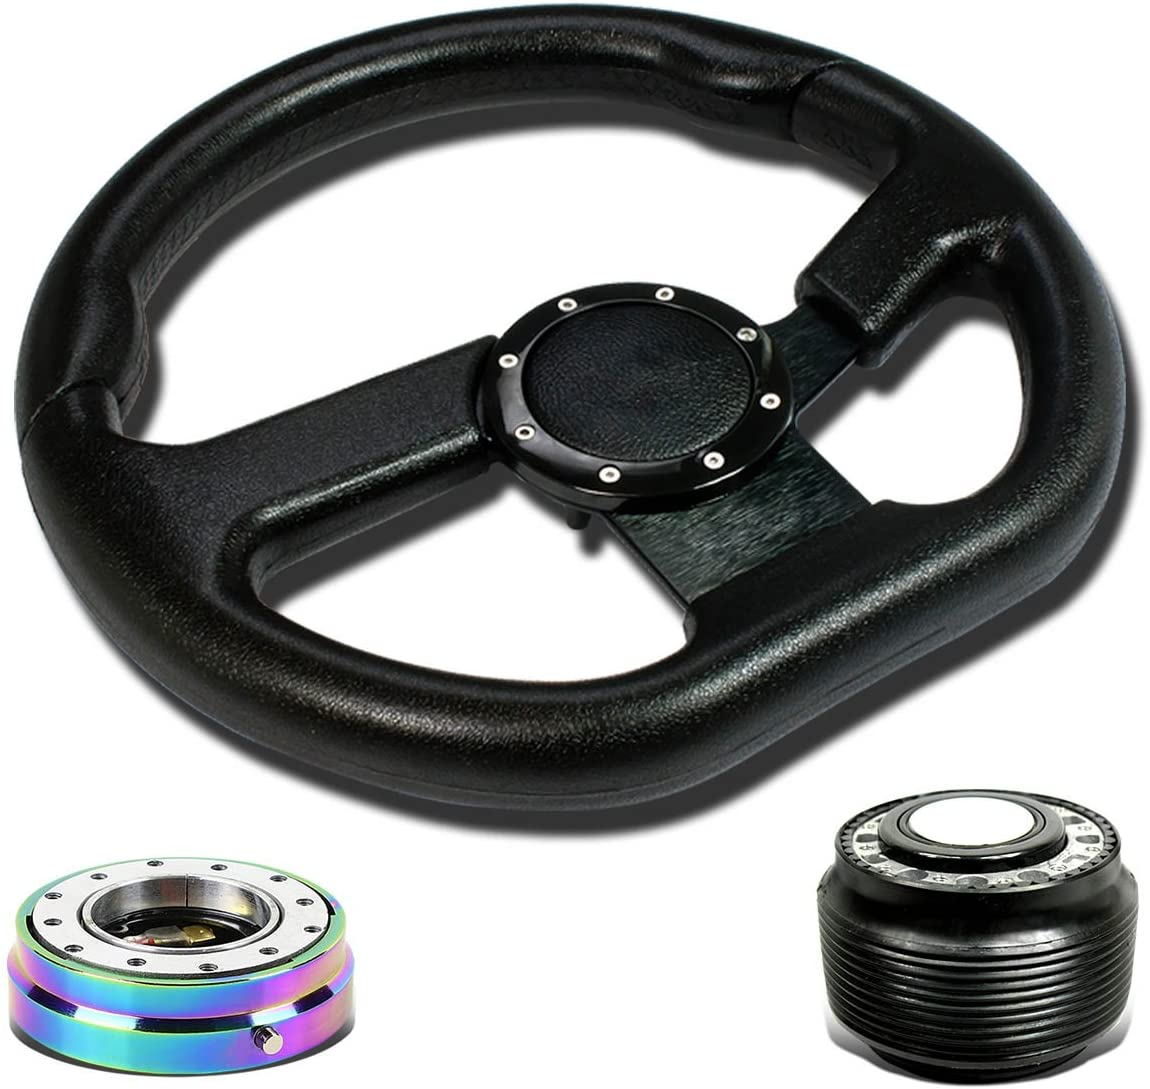 Replacement for Miata/Protege/RX7/RX8 320mm SW-T150 Steering Wheel+Hub Adapter+Neo Chrome 1 inch Quick Release